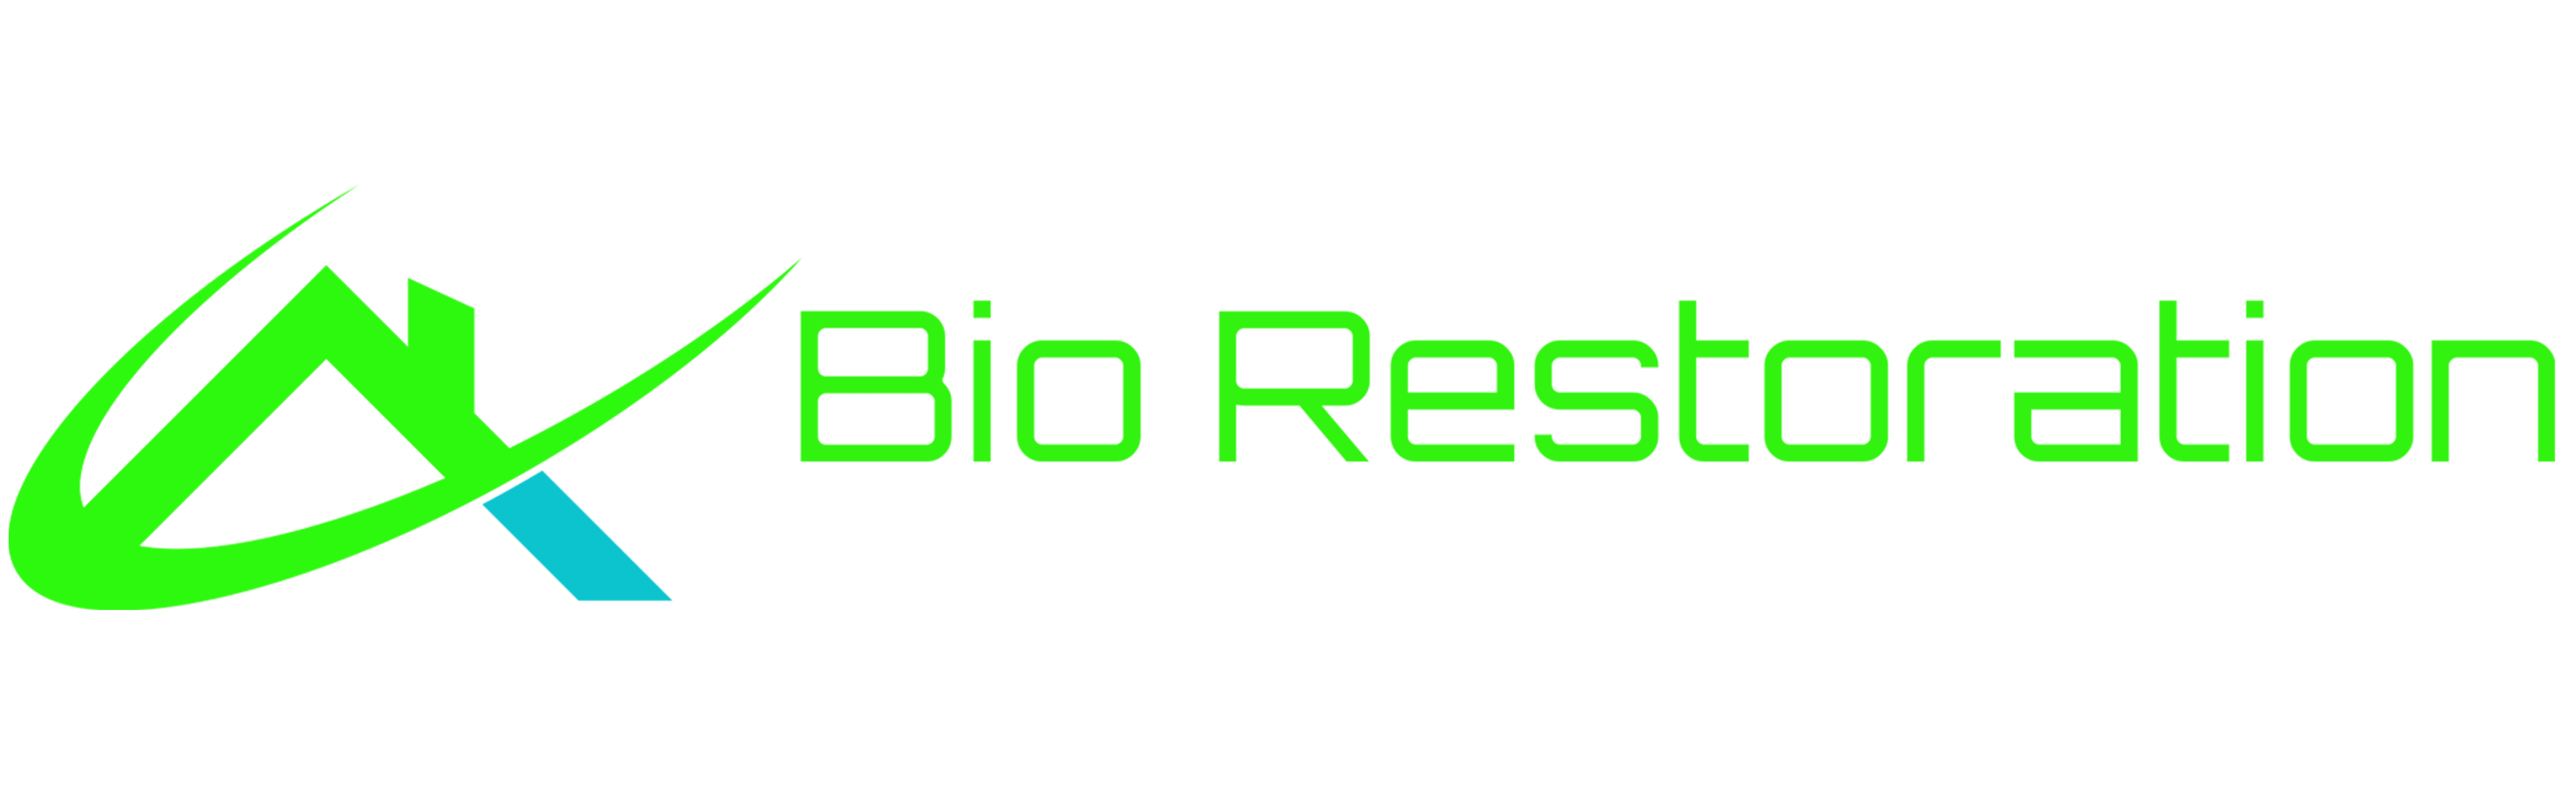 Bio Restoration Logo Full Name